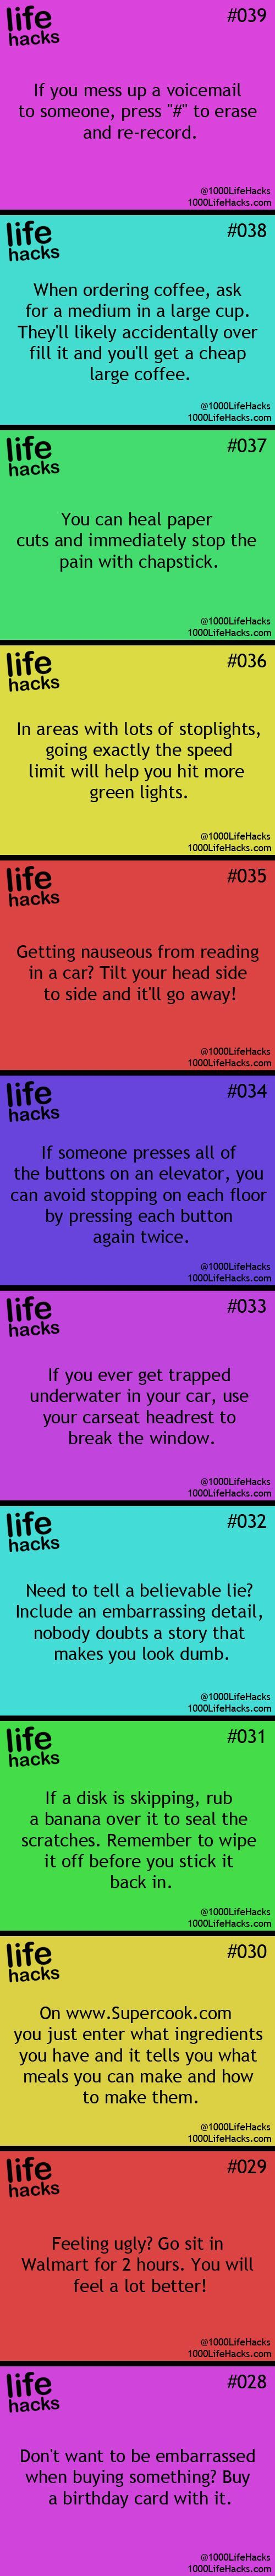 25 Useful Life Hacks that will come in handy in the future...